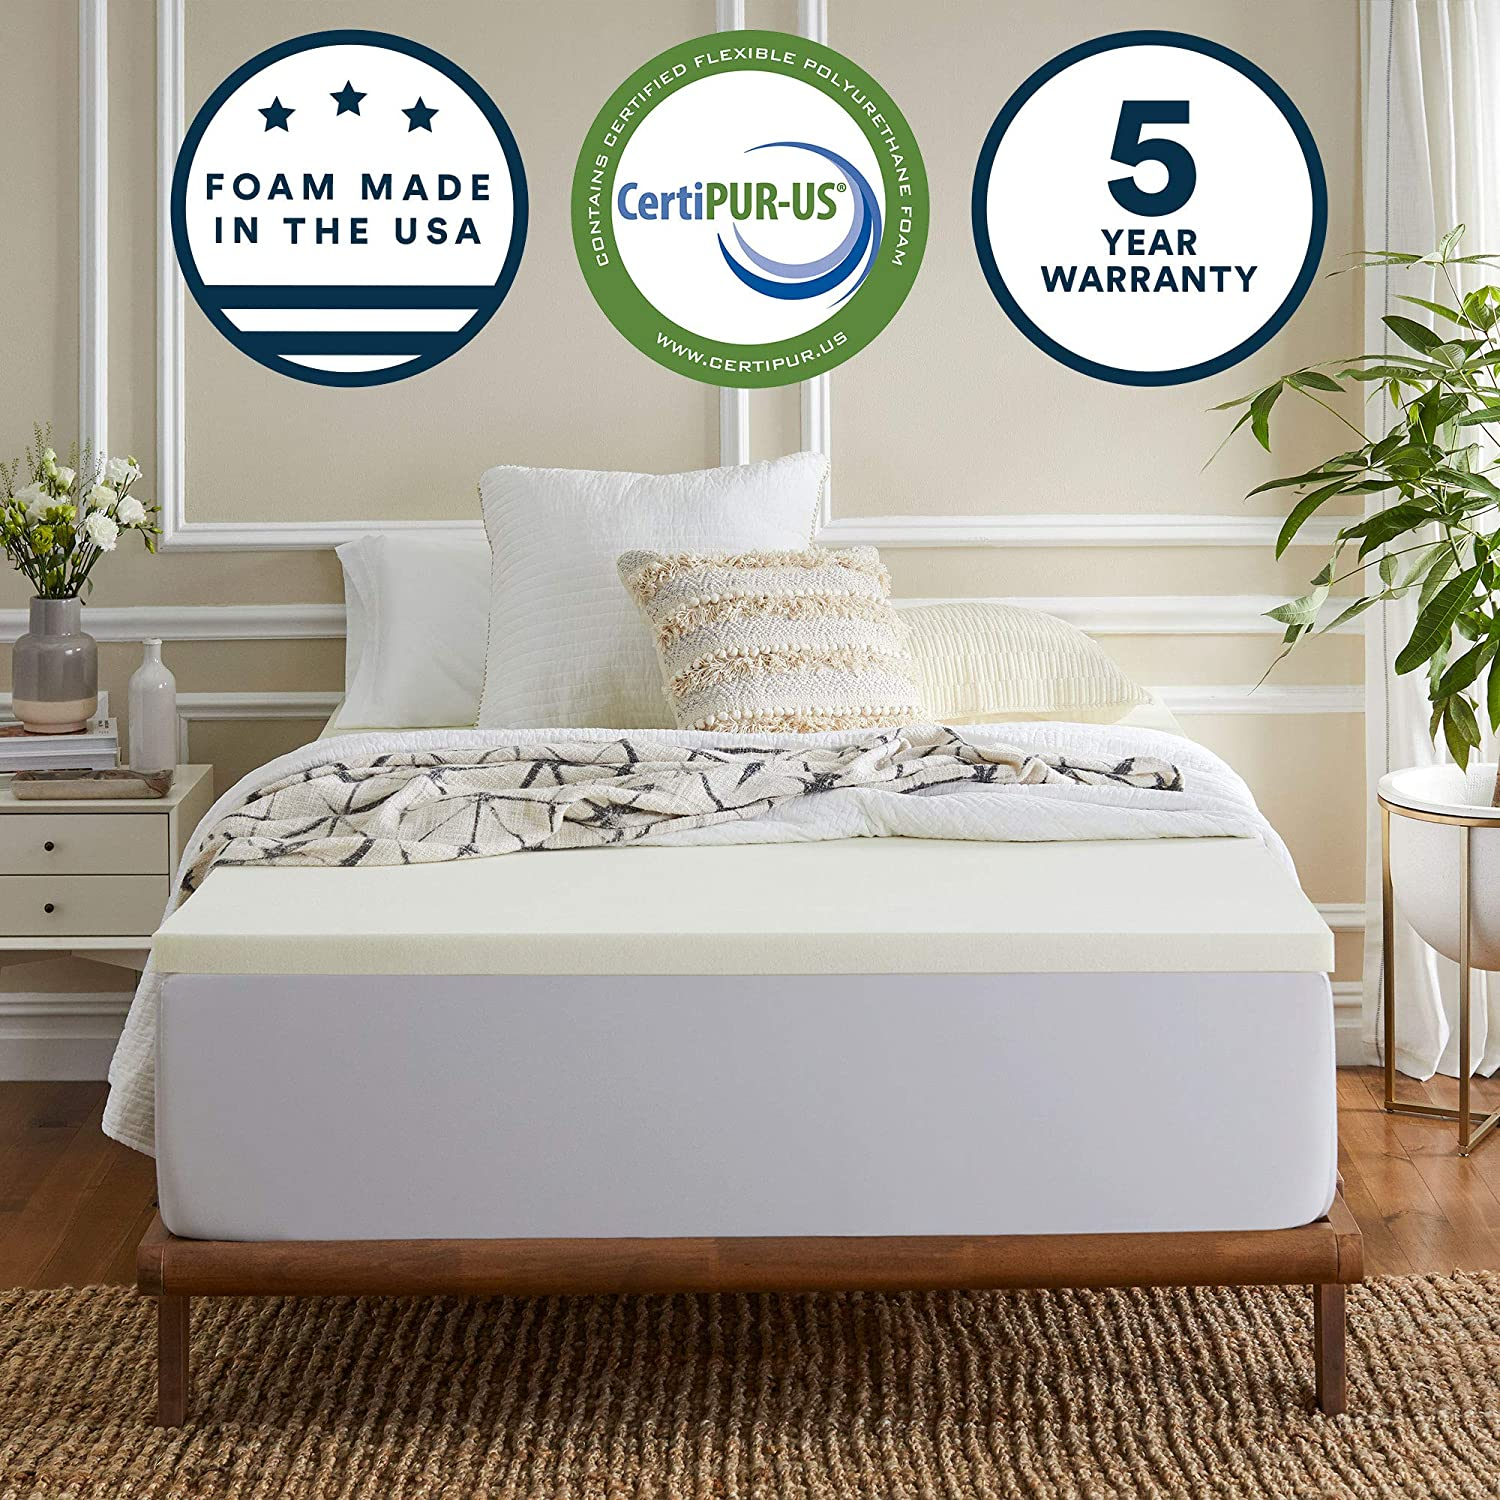 Sleep Innovations 2-inch Gel Memory Foam Mattress Topper Queen, Made in The USA with a 5-Year Warranty